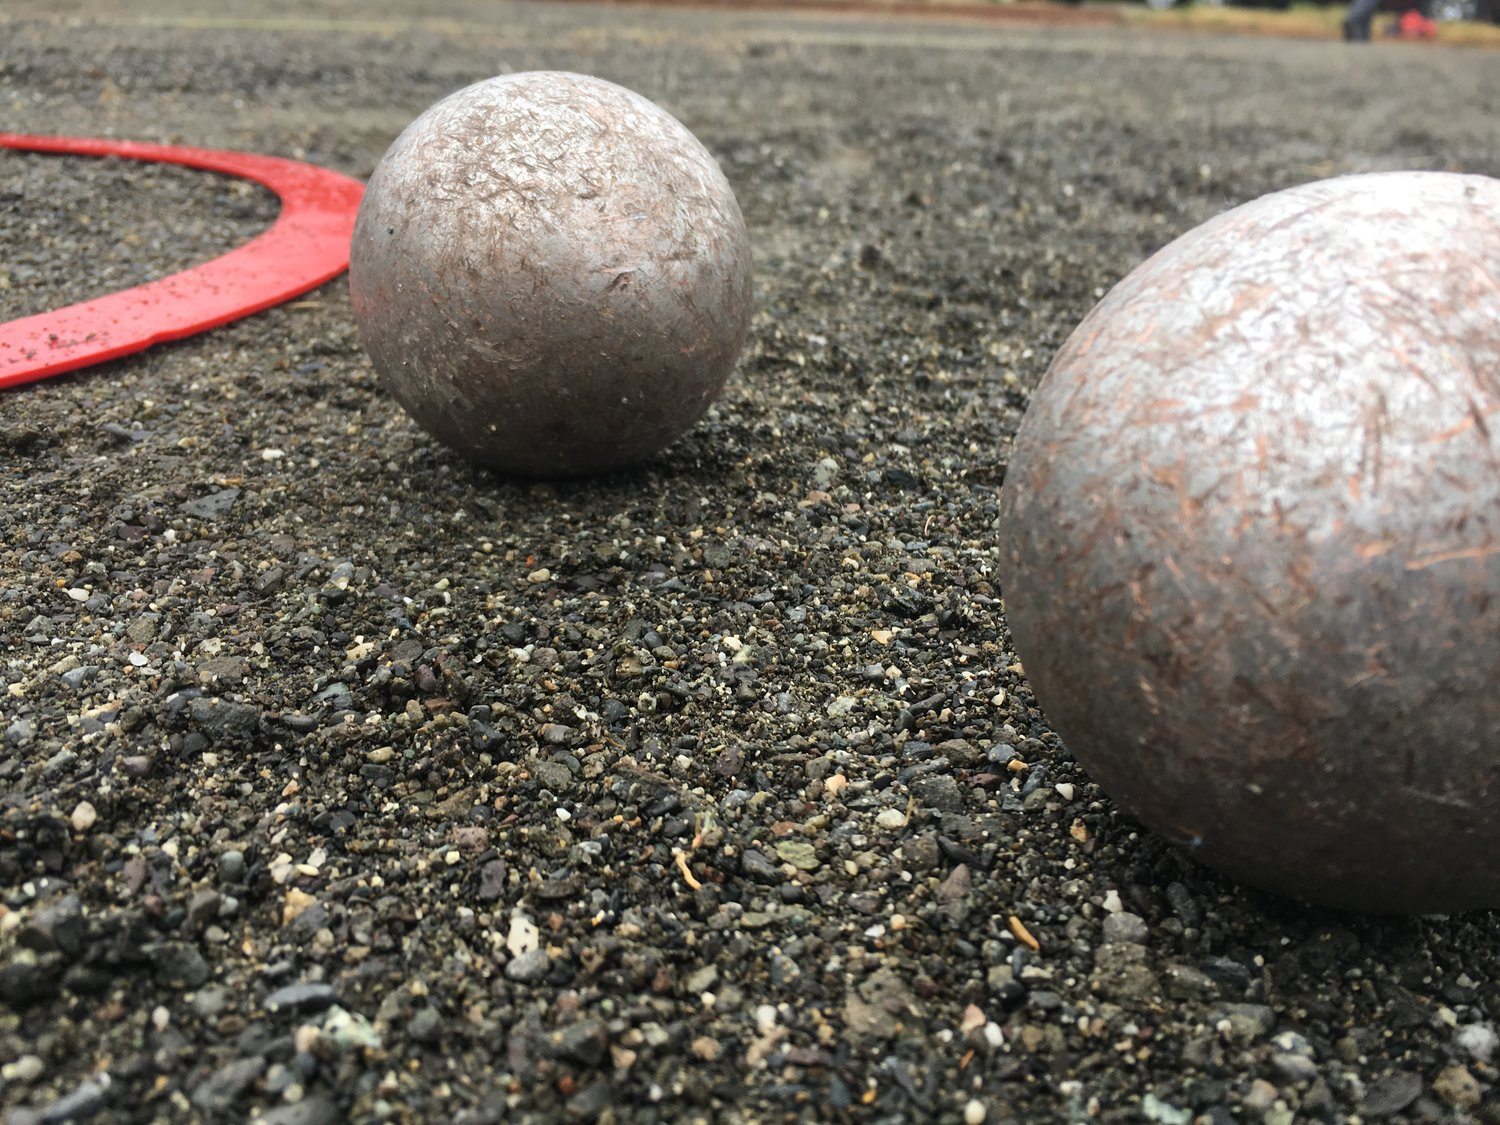 The Port Townsend Petanque Alliance gather twice a week to improve their skills and socialize while they compete in a 120-year-old French game of mental tenacity.